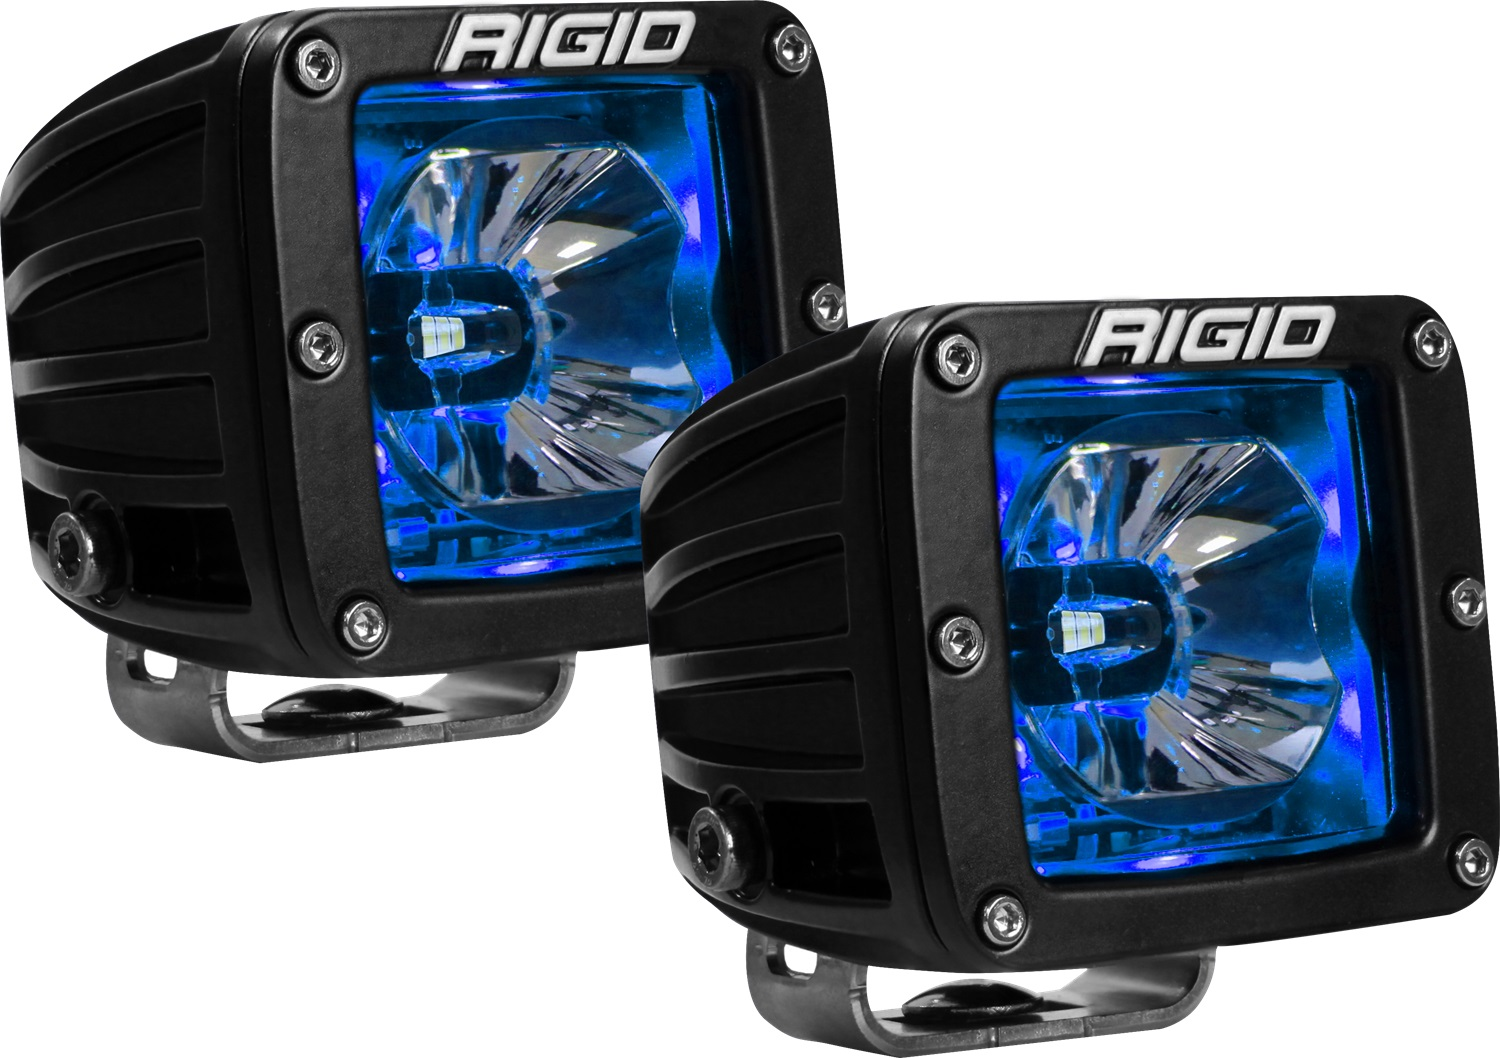 Rigid Industries 20201 Radiance Pod